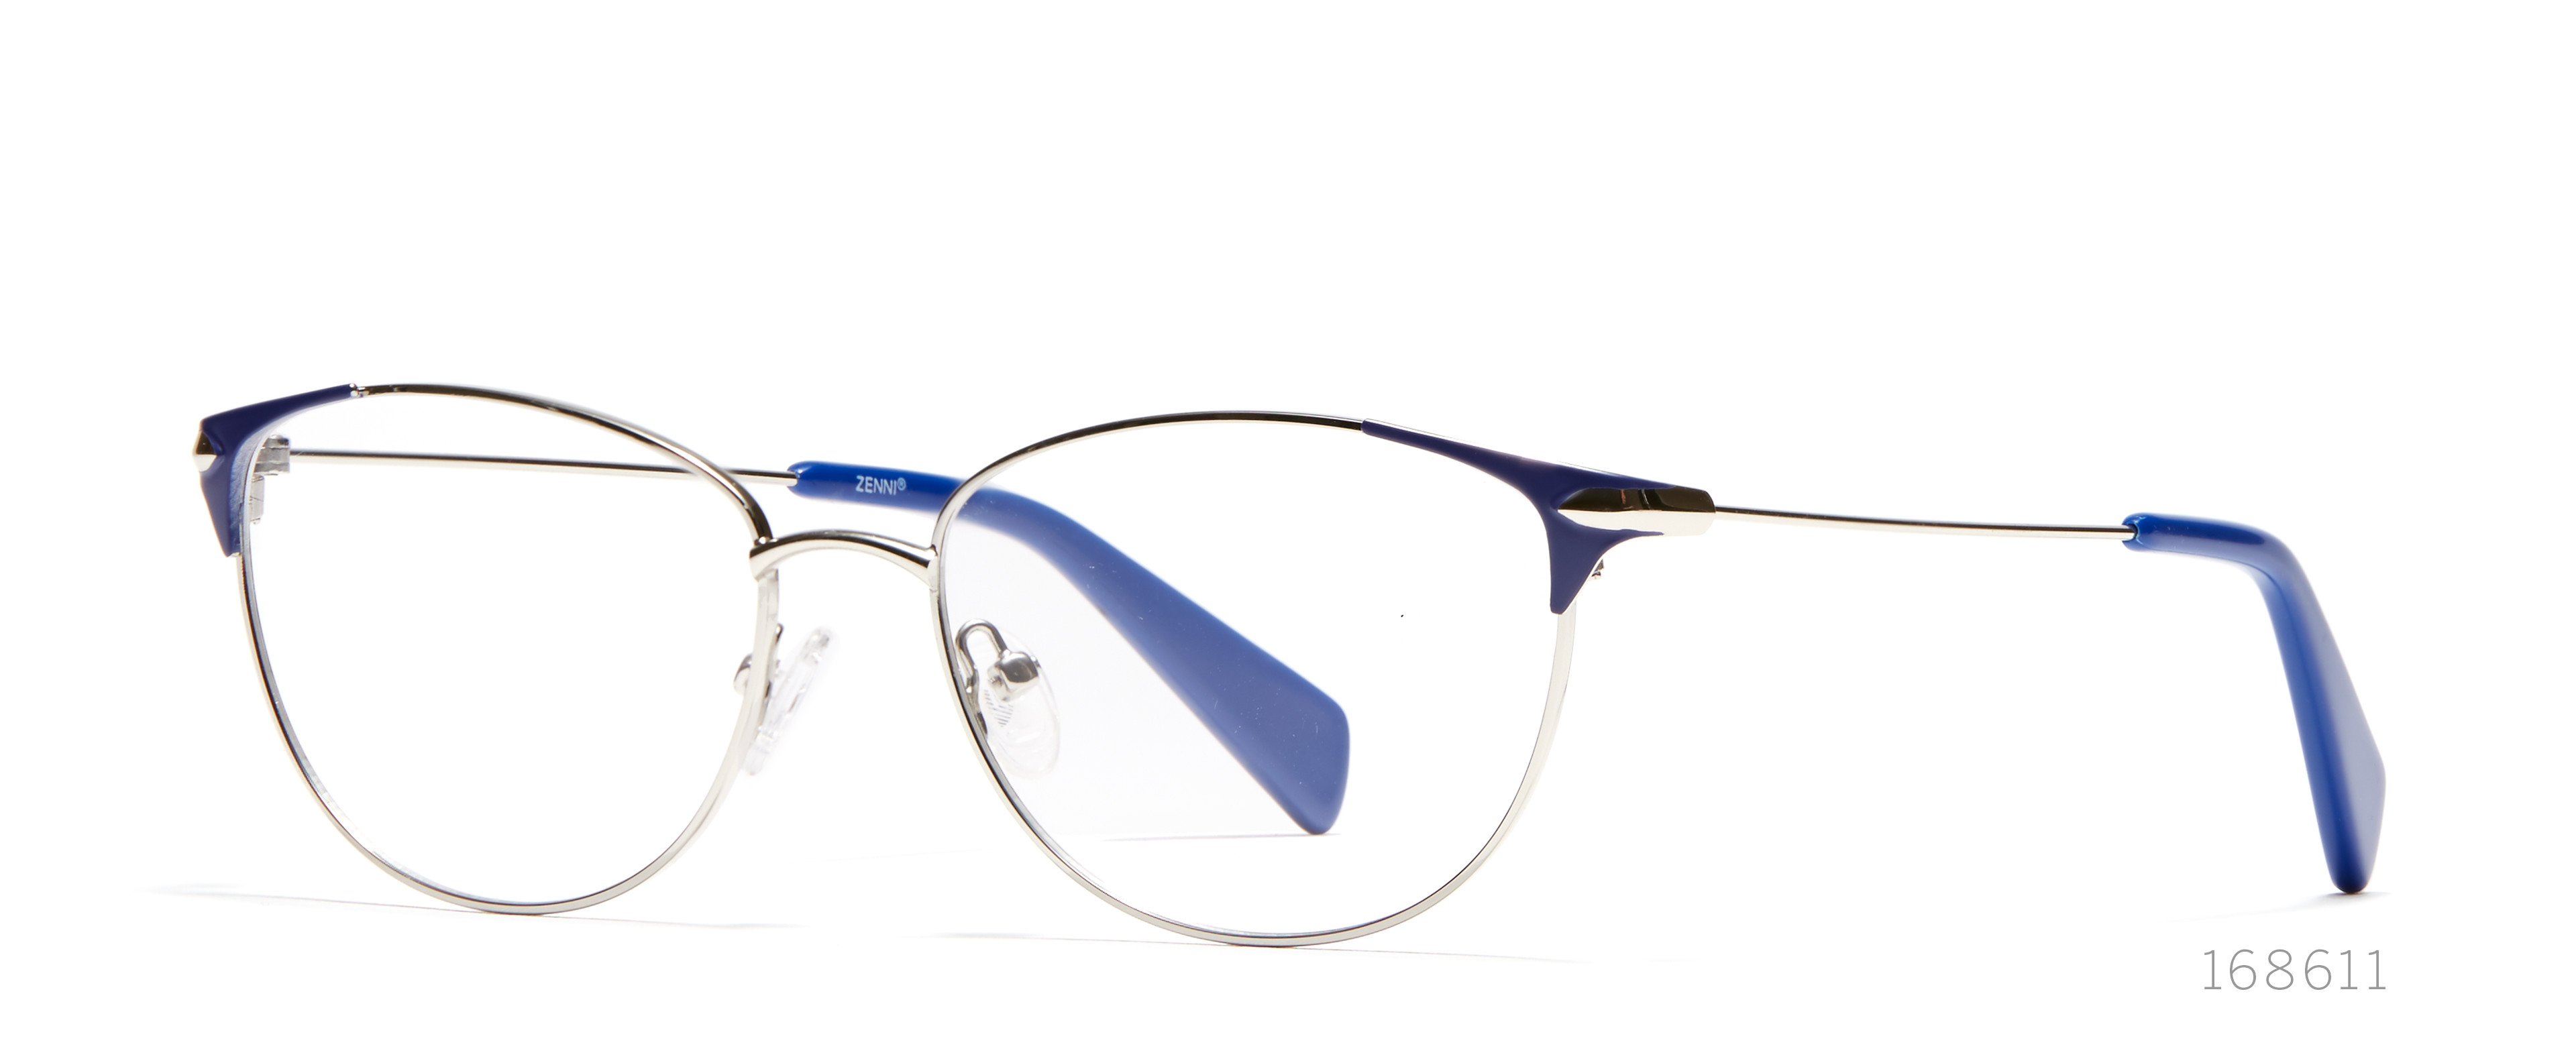 wire glasses for diamond face